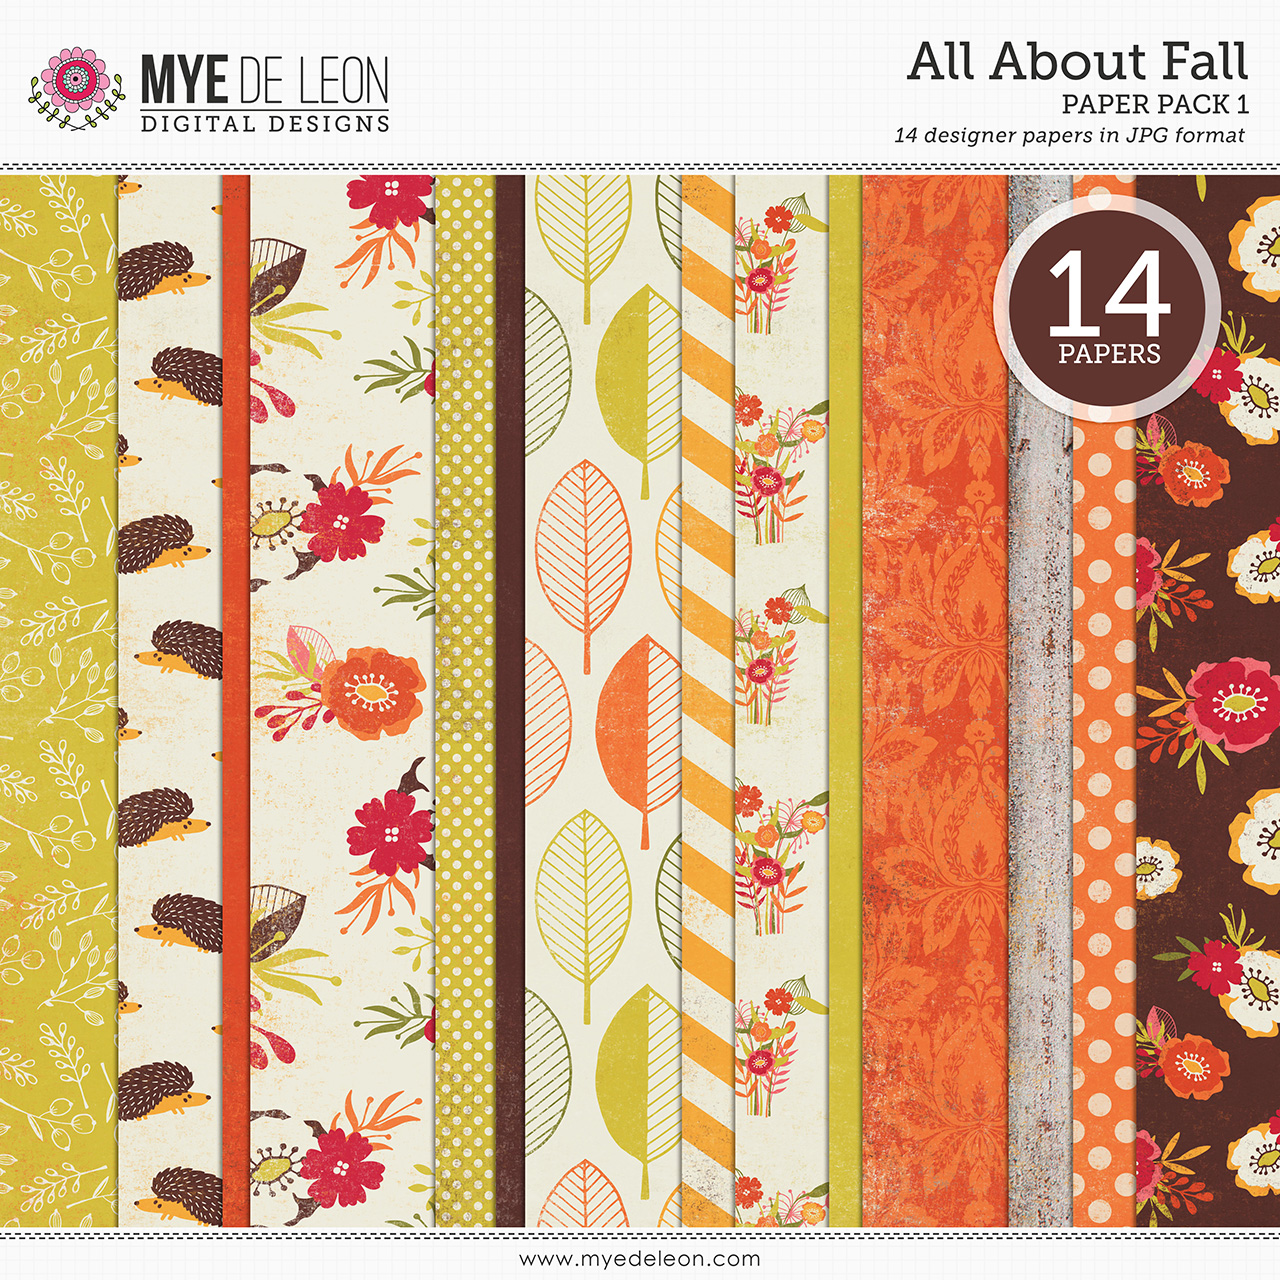 All About Fall | Paper Pack 1